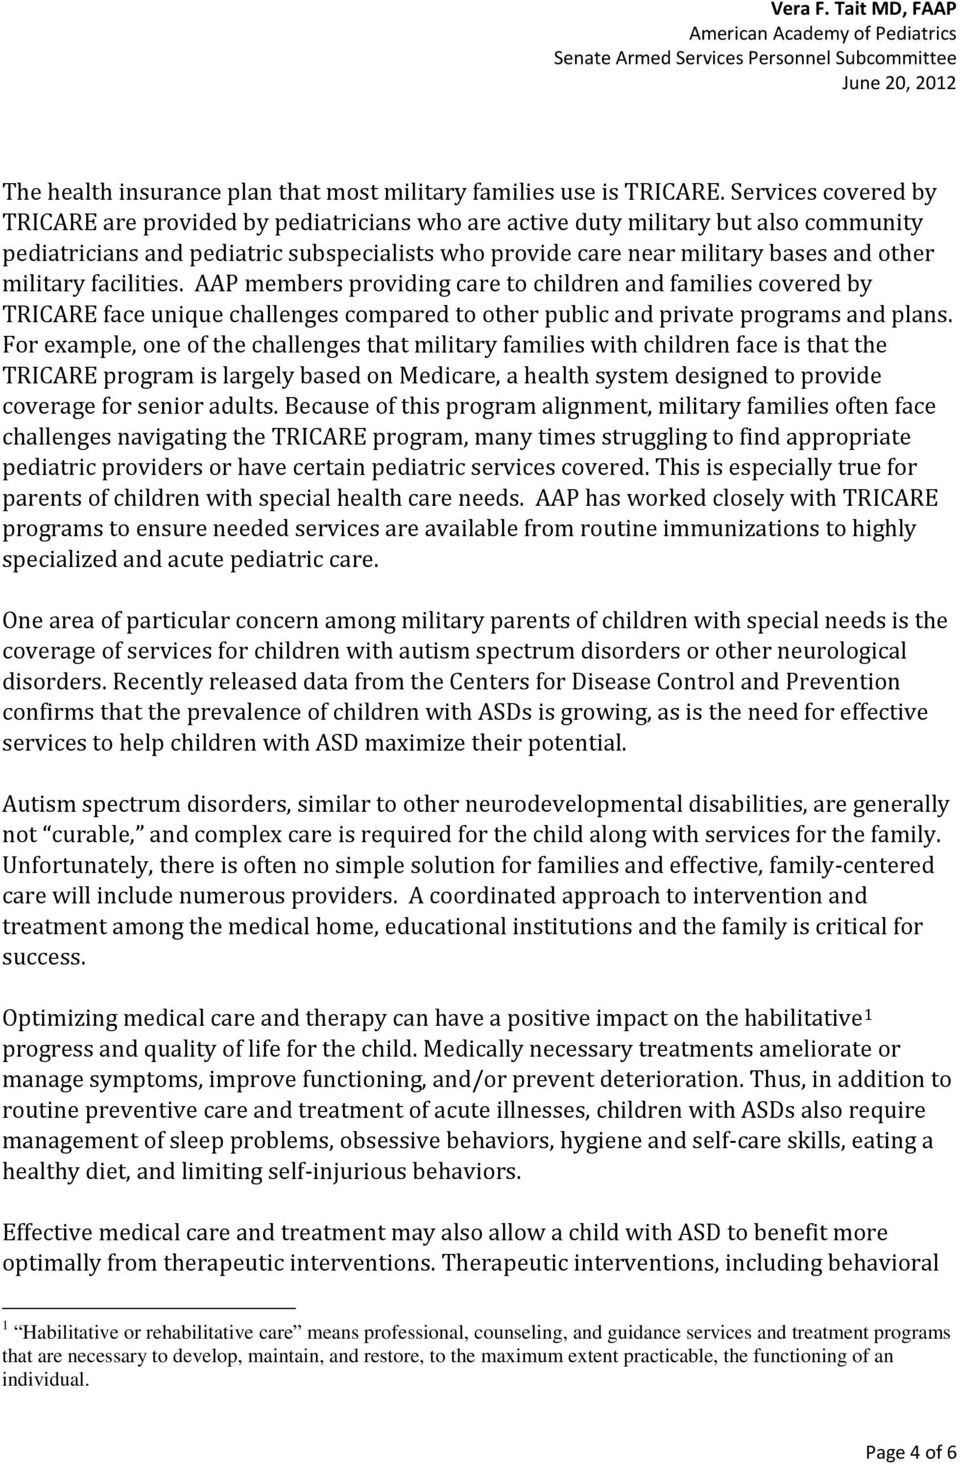 military facilities. AAP members providing care to children and families covered by TRICARE face unique challenges compared to other public and private programs and plans.